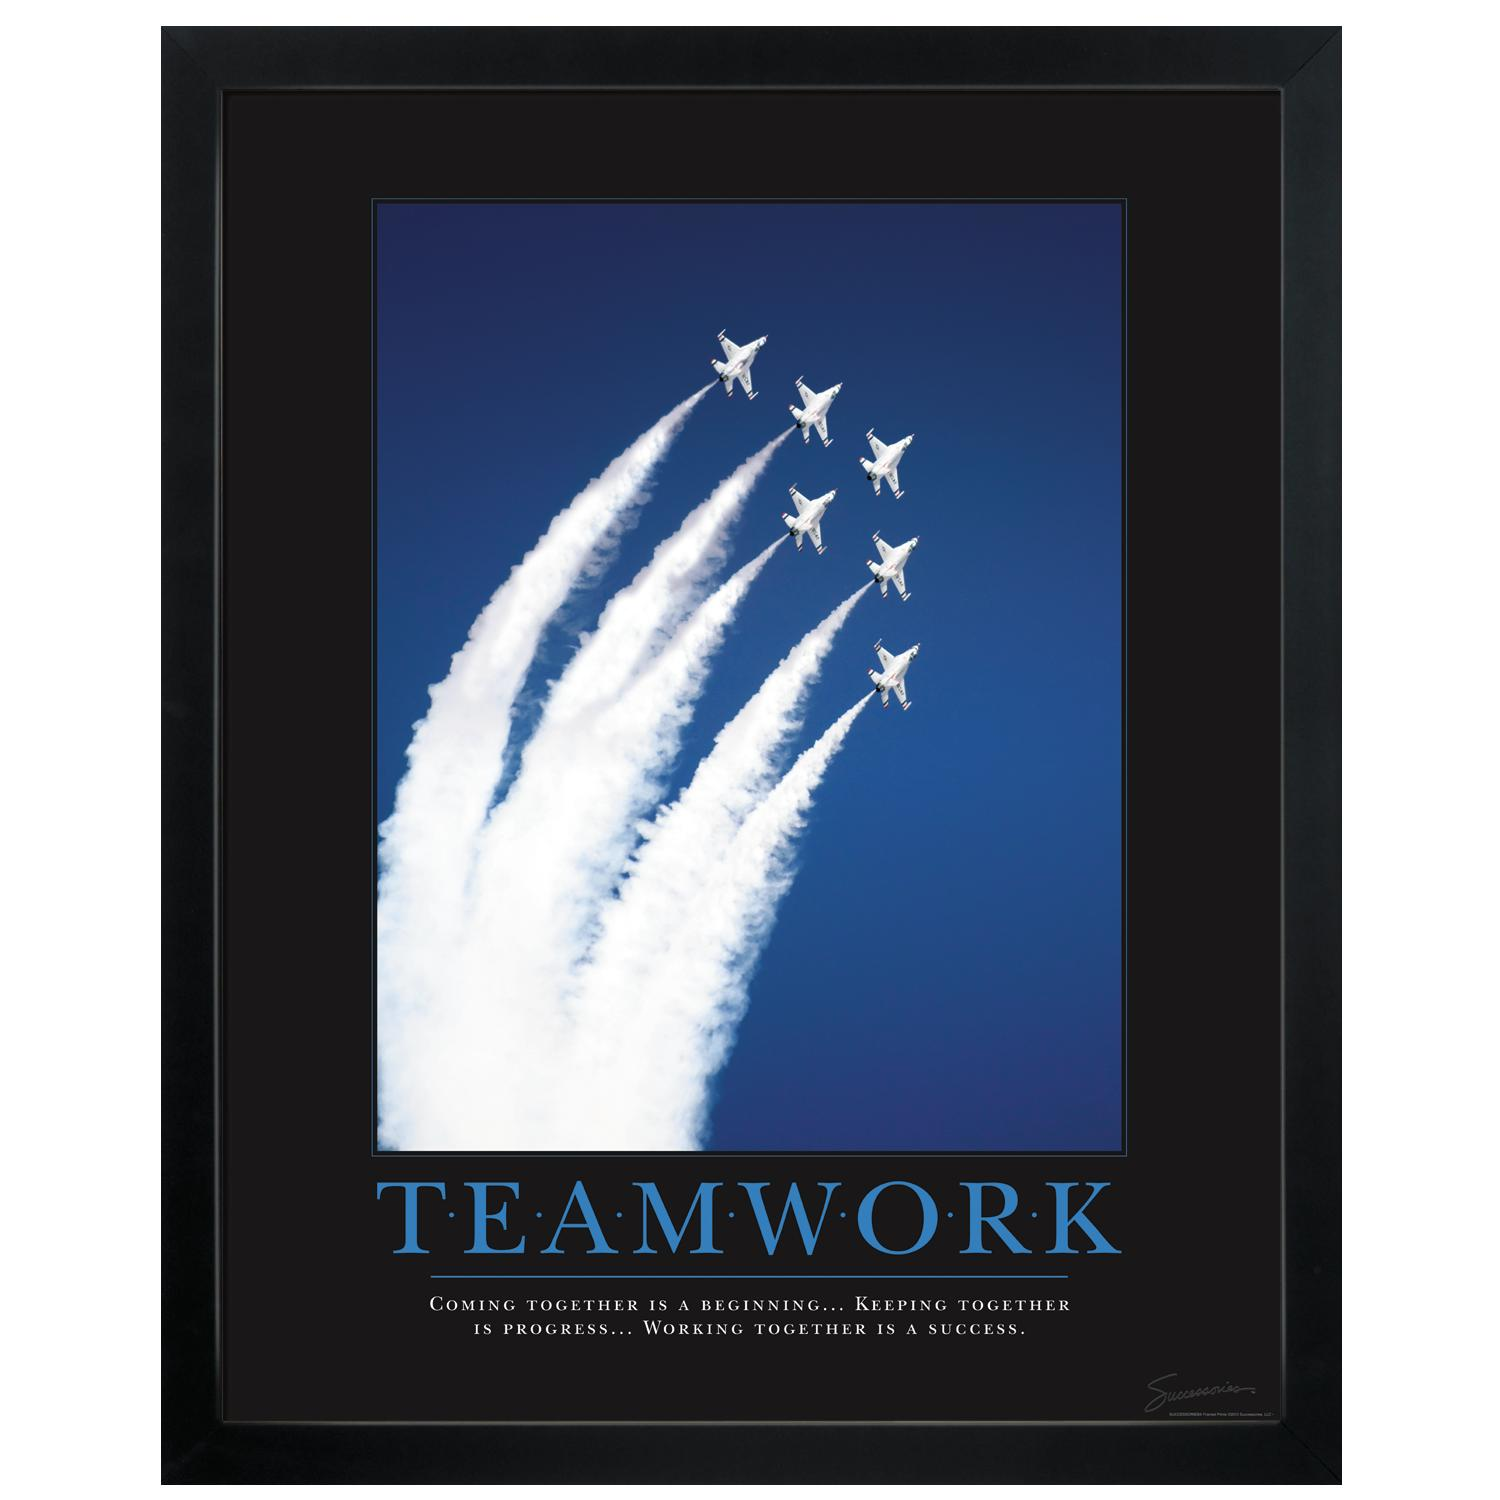 Demotivational Quotes For The Workplace Quotesgram: Motivational Teamwork Quotes For Office. QuotesGram